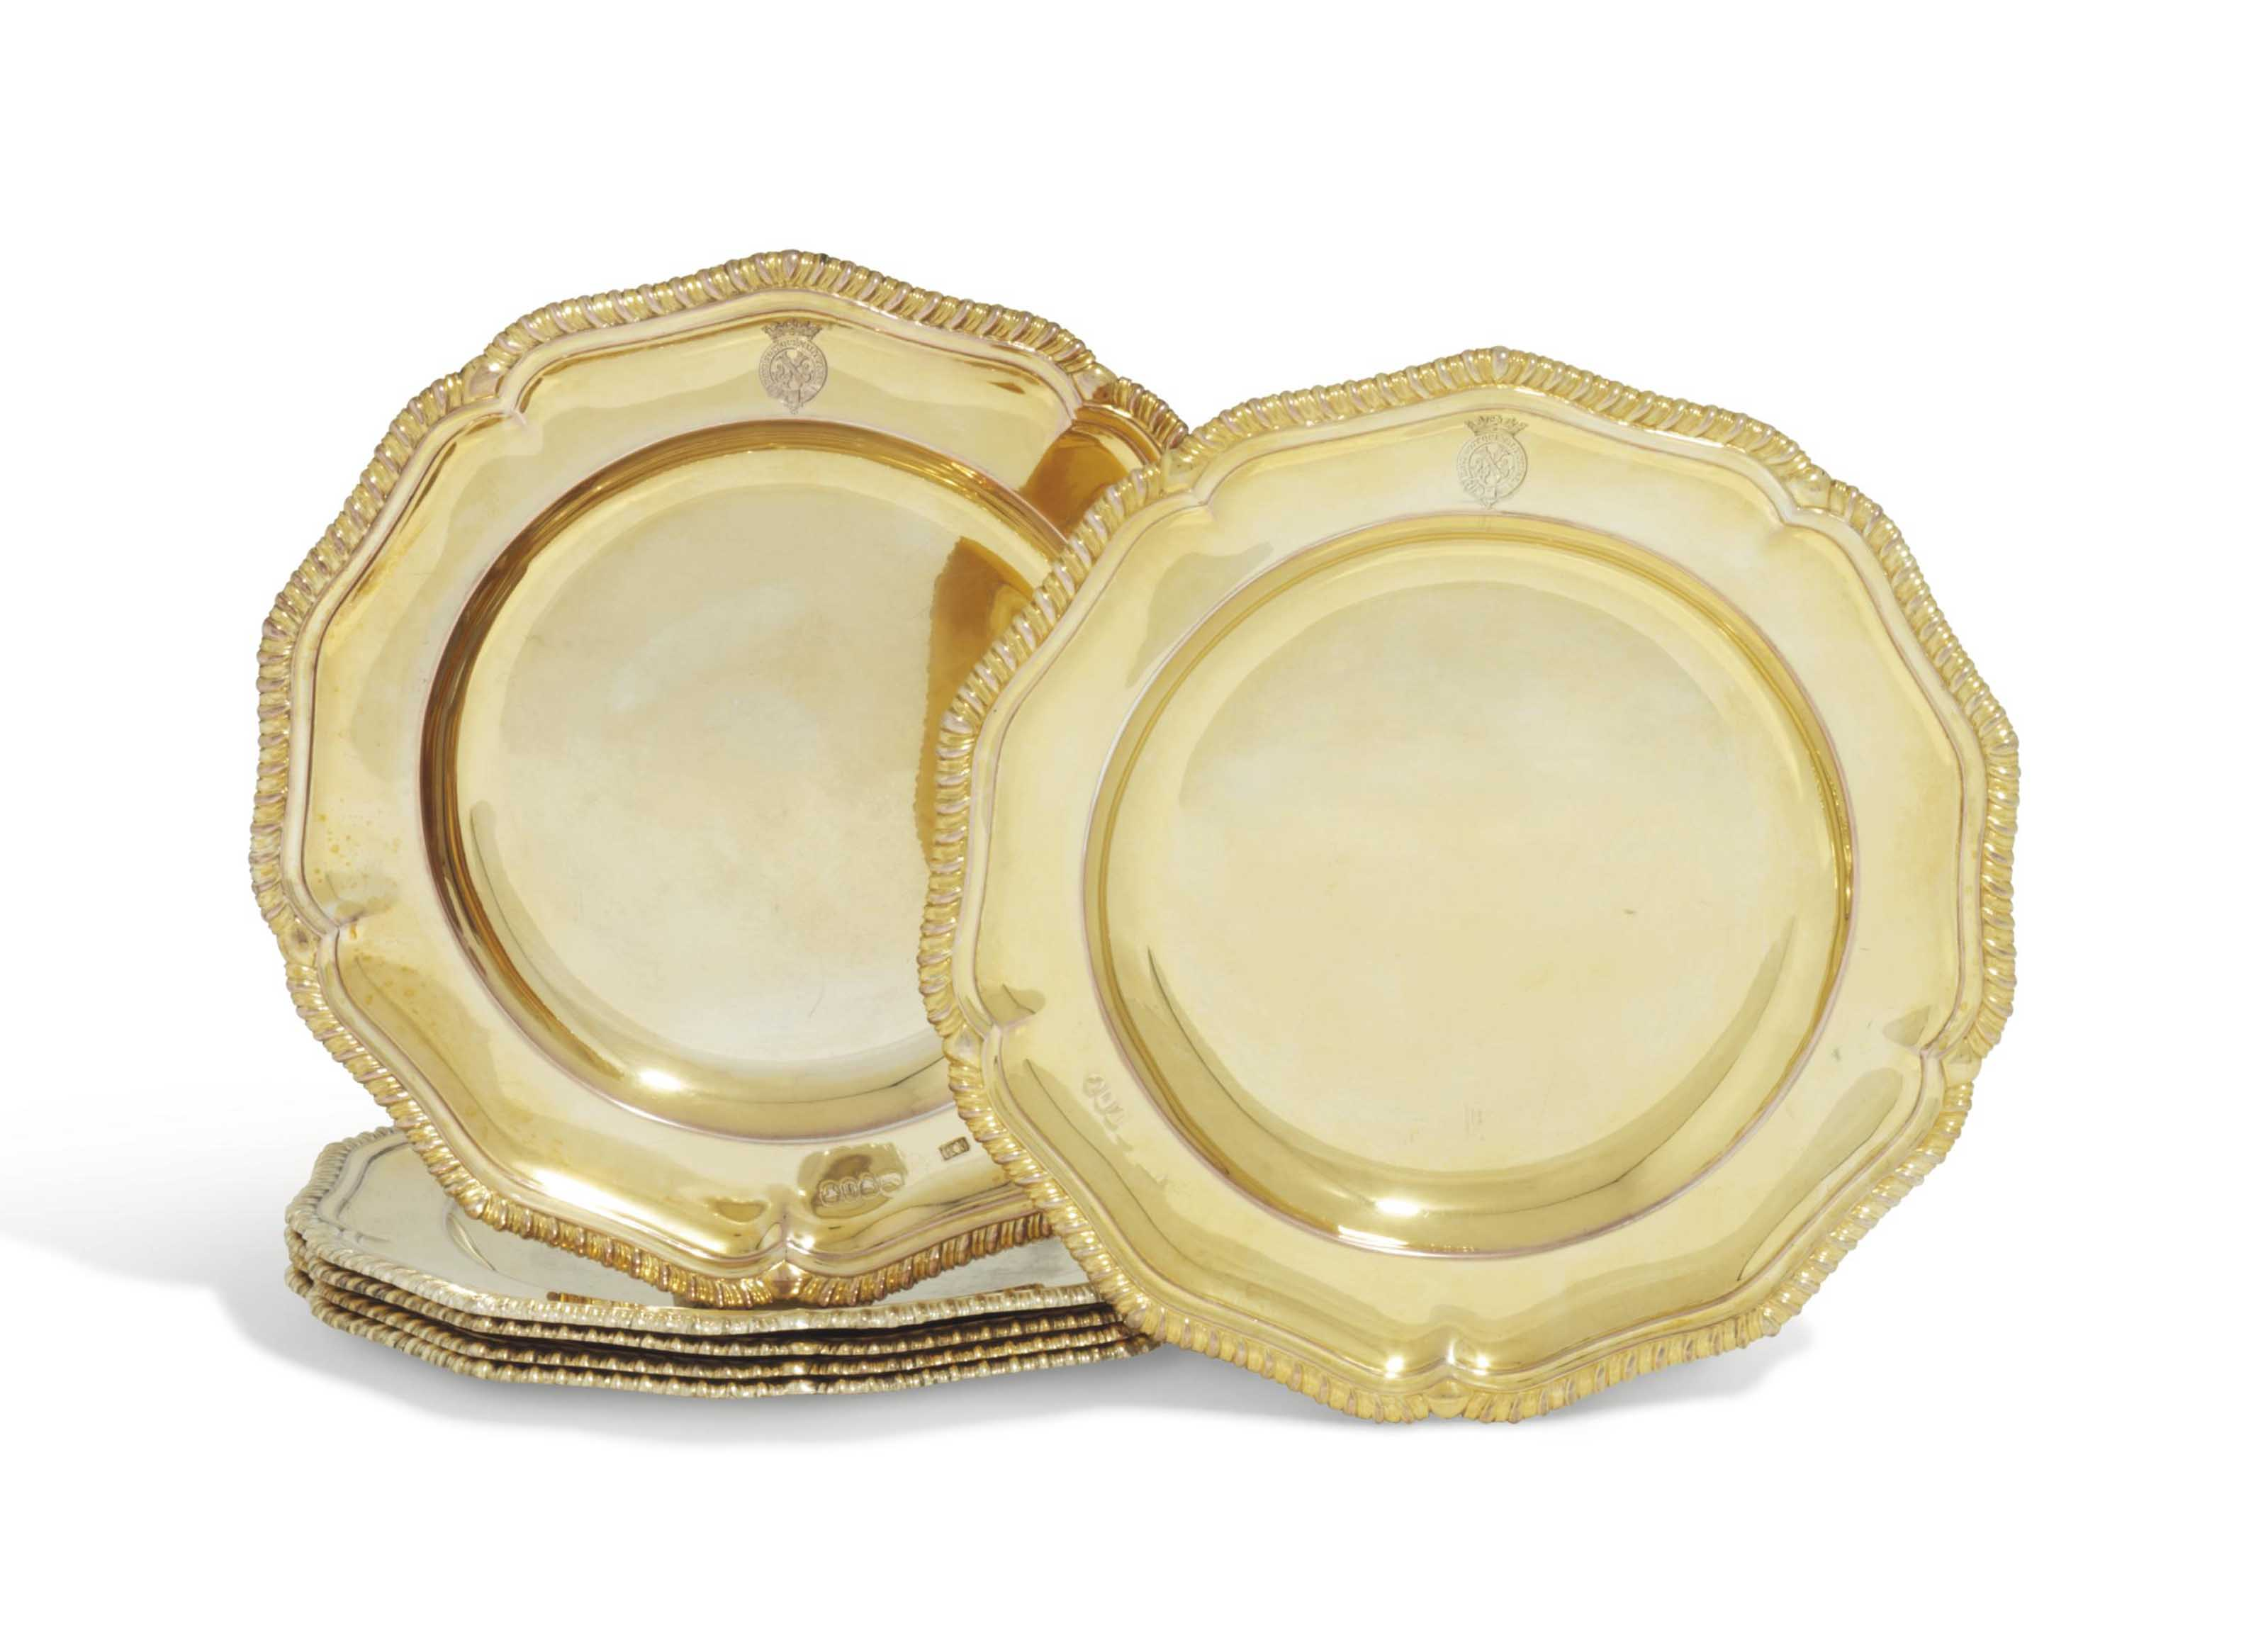 A SET OF SIX VICTORIAN SILVER-GILT DESSERT PLATES